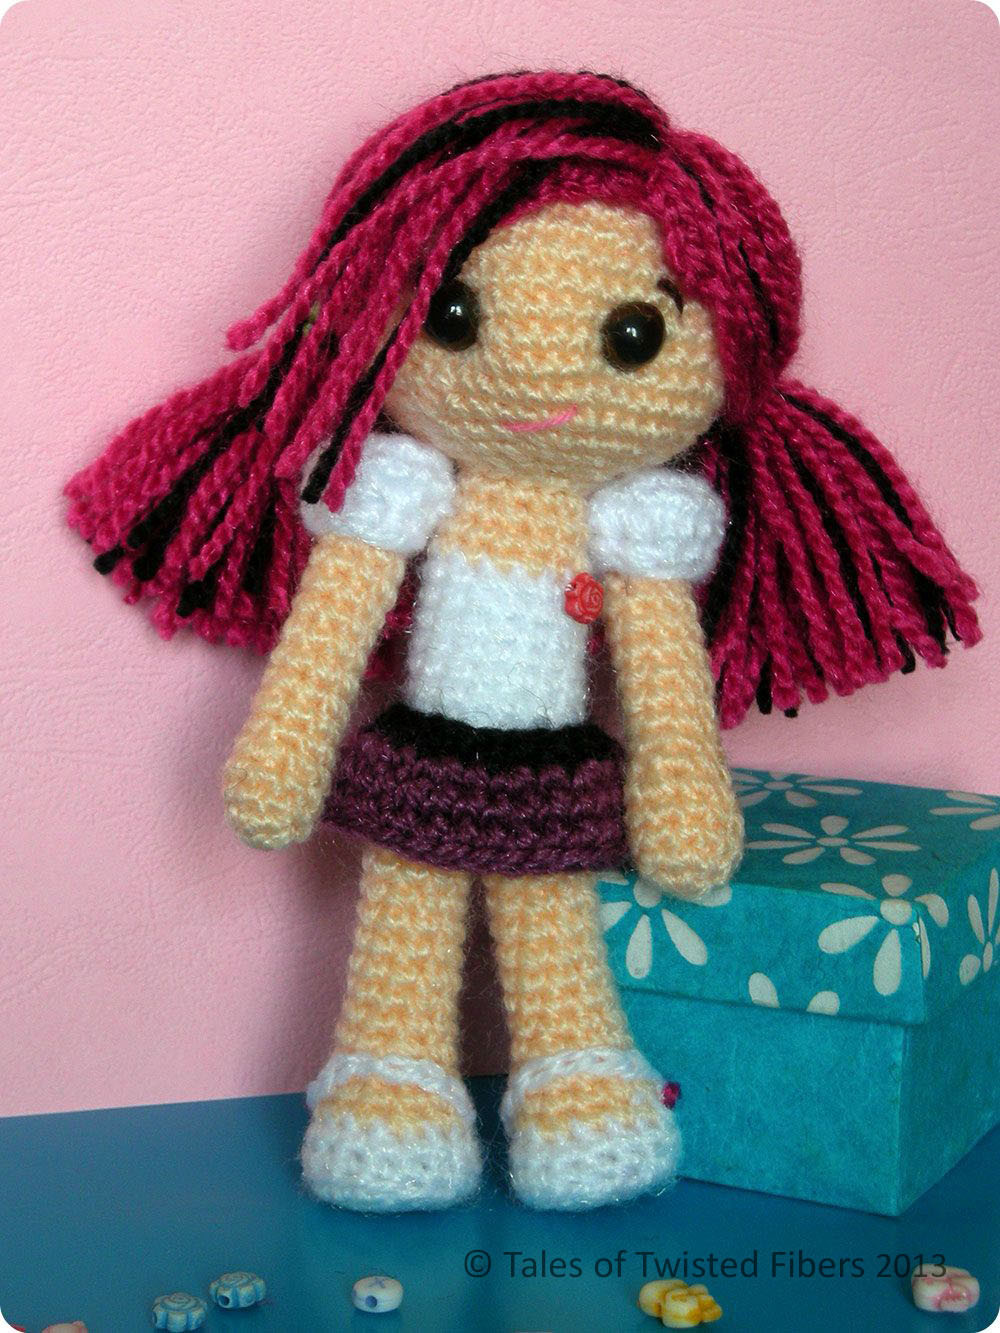 Doll Patterns Beautiful Amy the Amigurumi Doll Free Pattern – Tales Of Twisted Fibers Of Doll Patterns Best Of Rag Doll Patterns